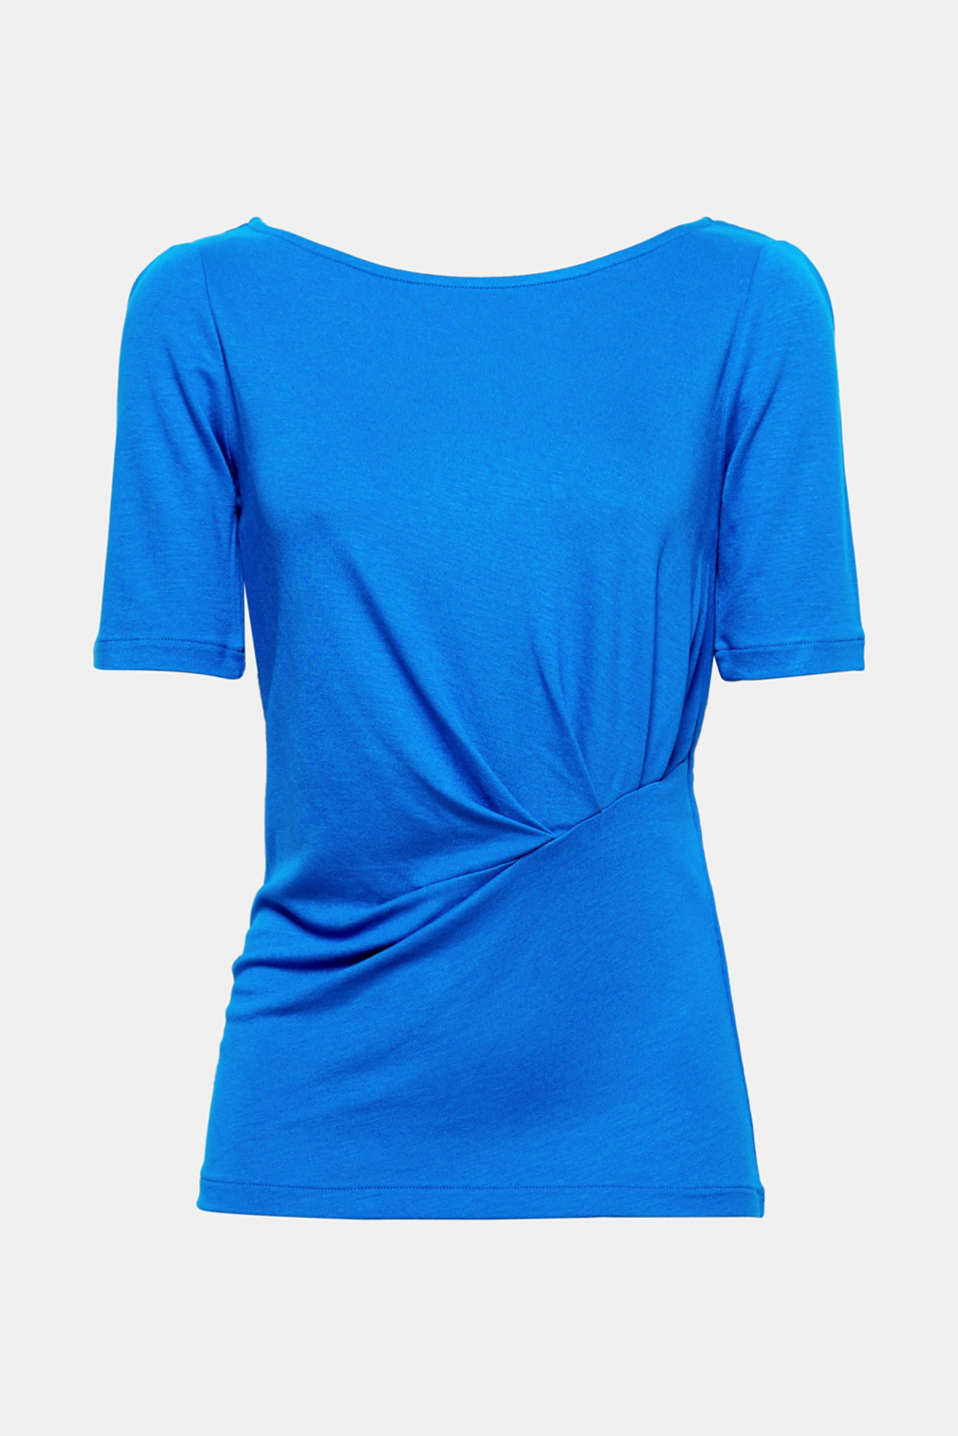 This soft stretch top with a decorative gather at waist height flatters the silhouette!